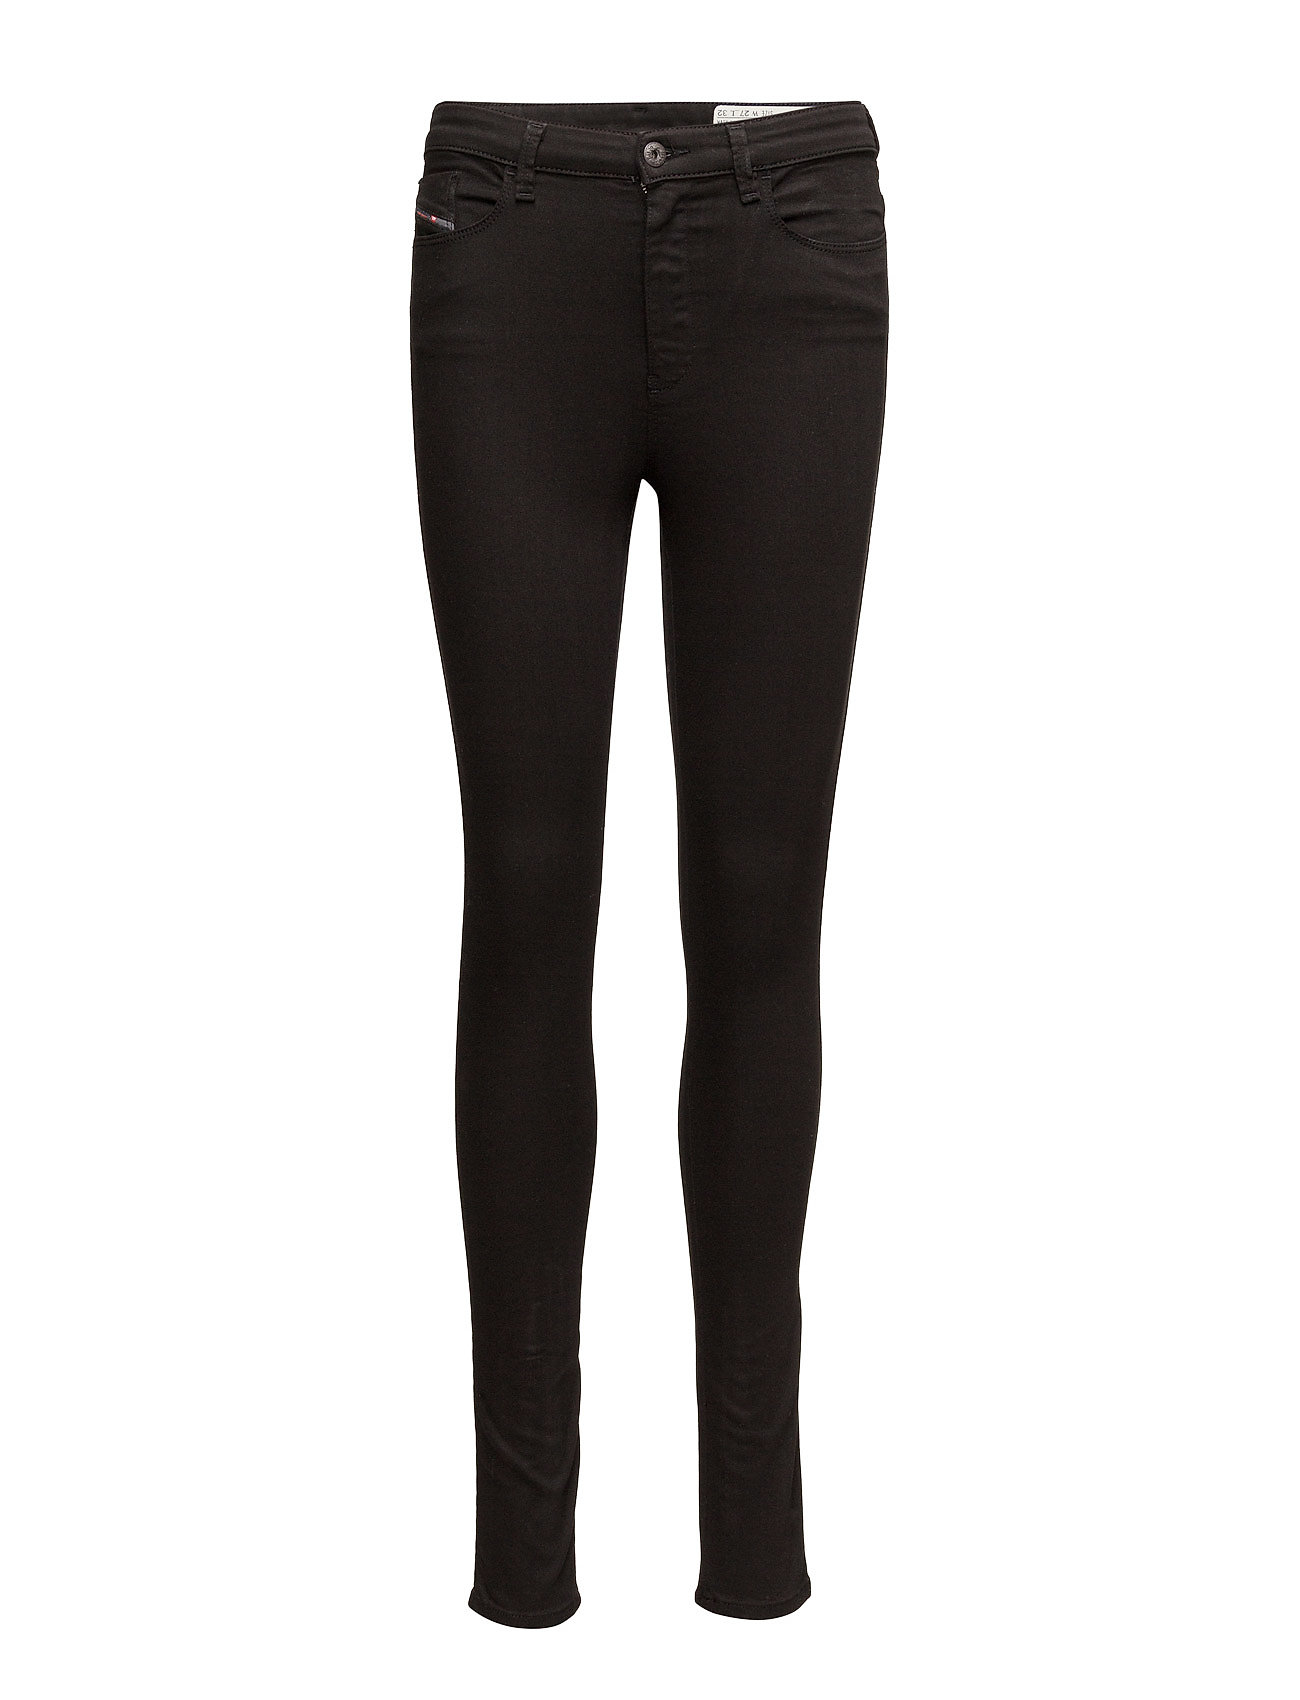 Diesel Women SKINZEE-HIGH TROUSERS - BLACK/DENIM